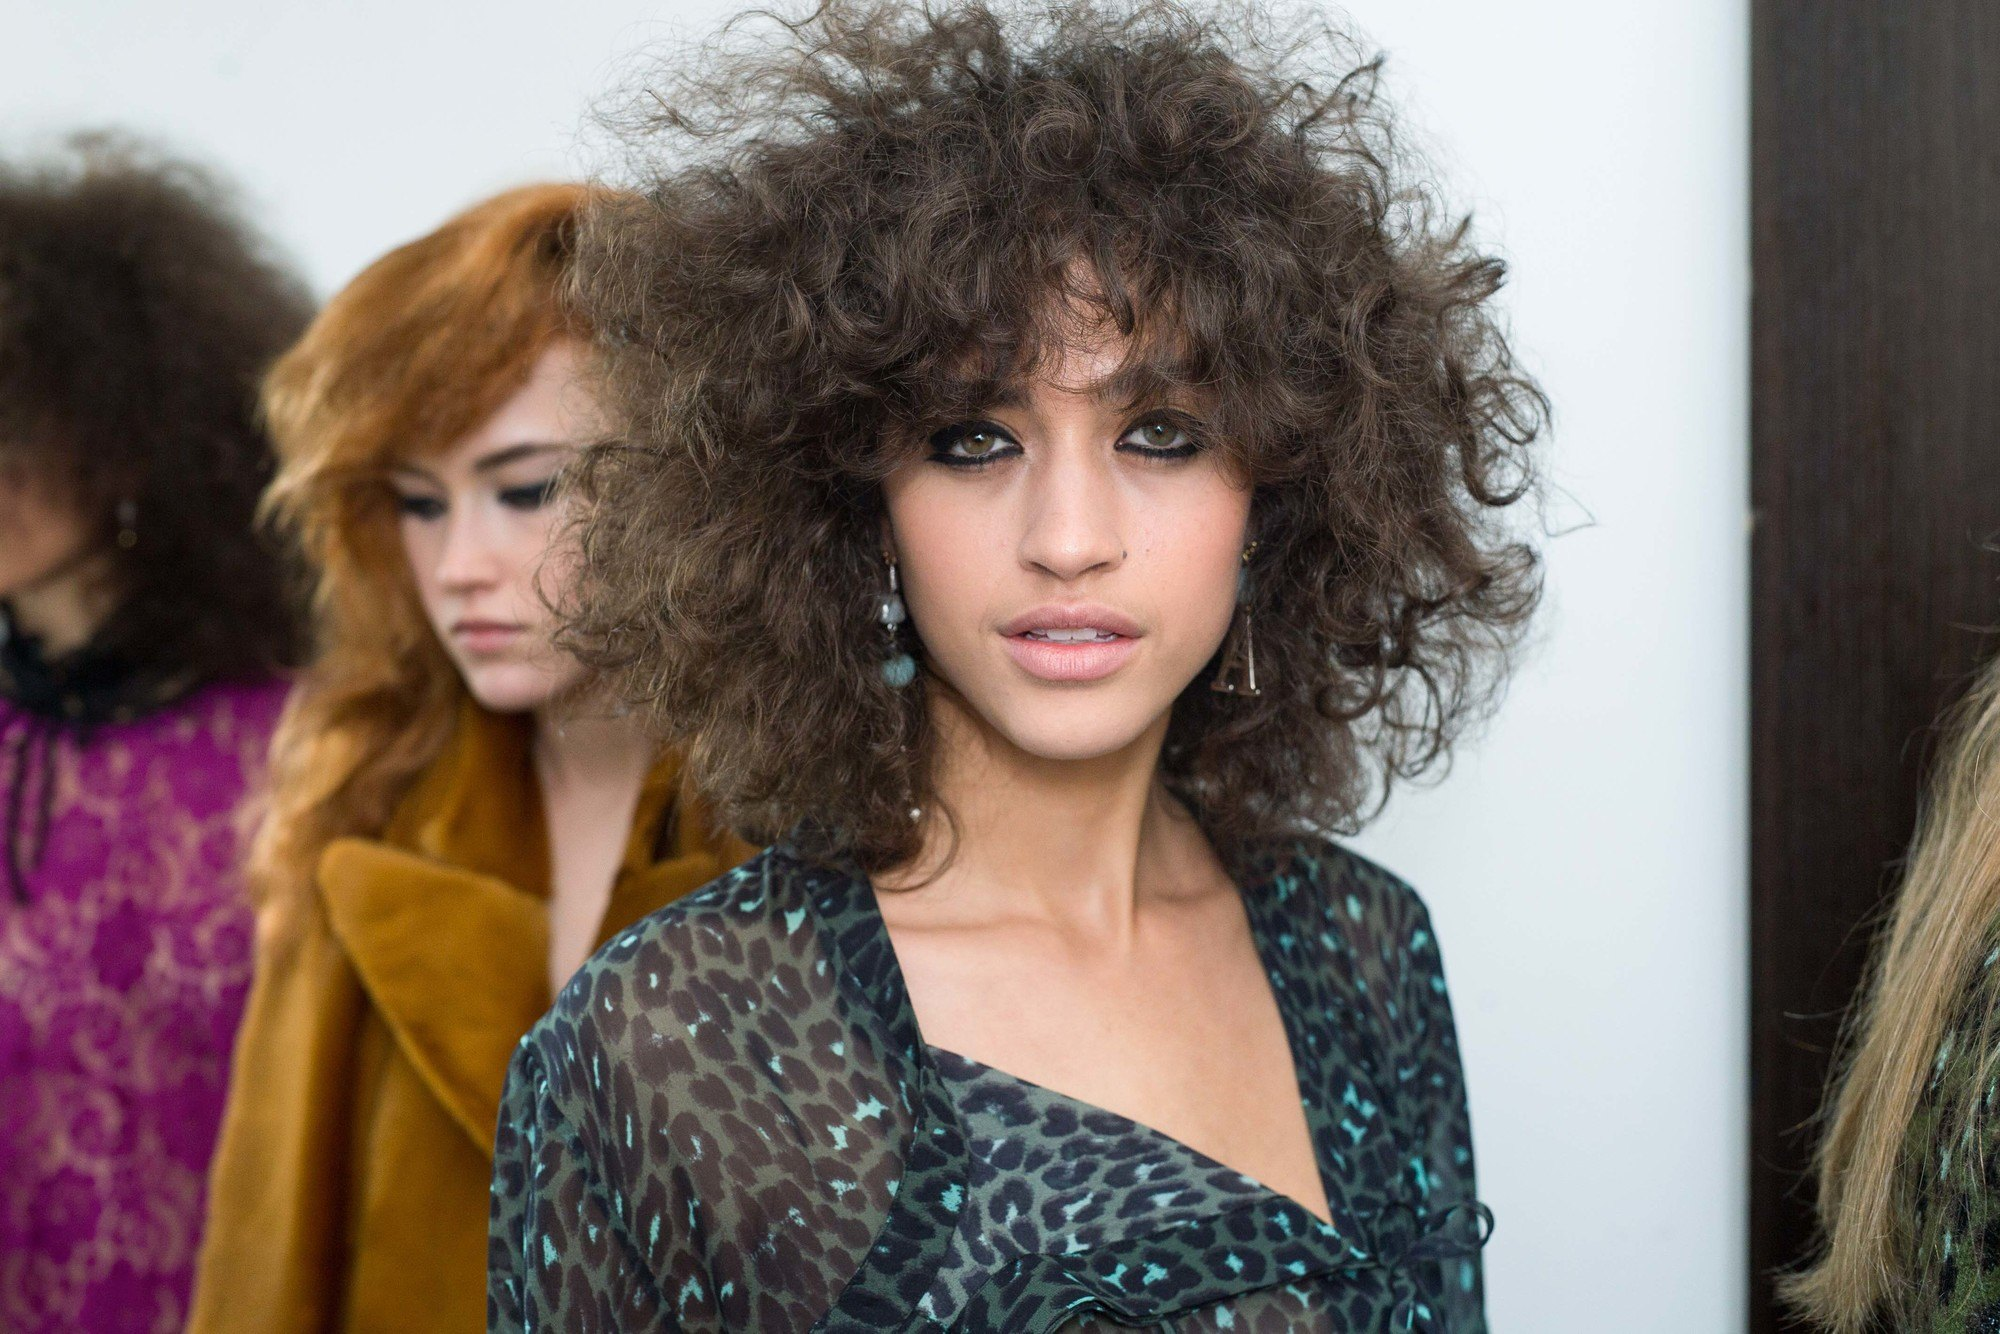 Permed hair care tips woman with curly voluminous hair backstage at topshop show